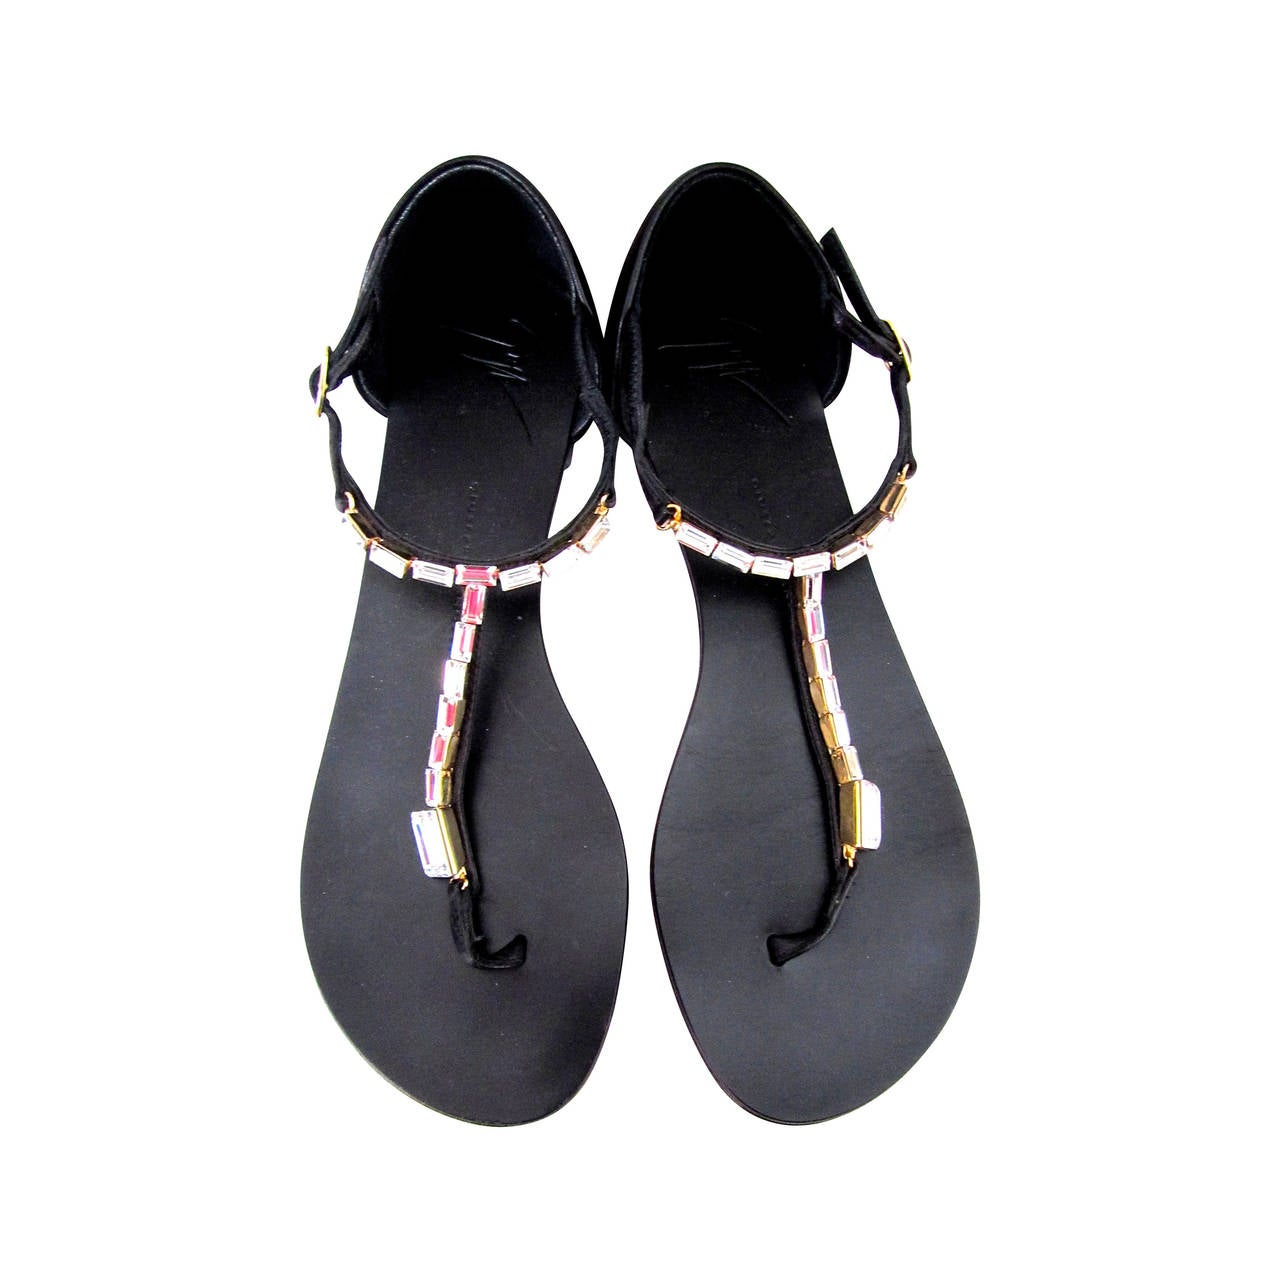 Giuseppe Zanotti Strap Sandals - Size 37 - Black with Rhinestones 1